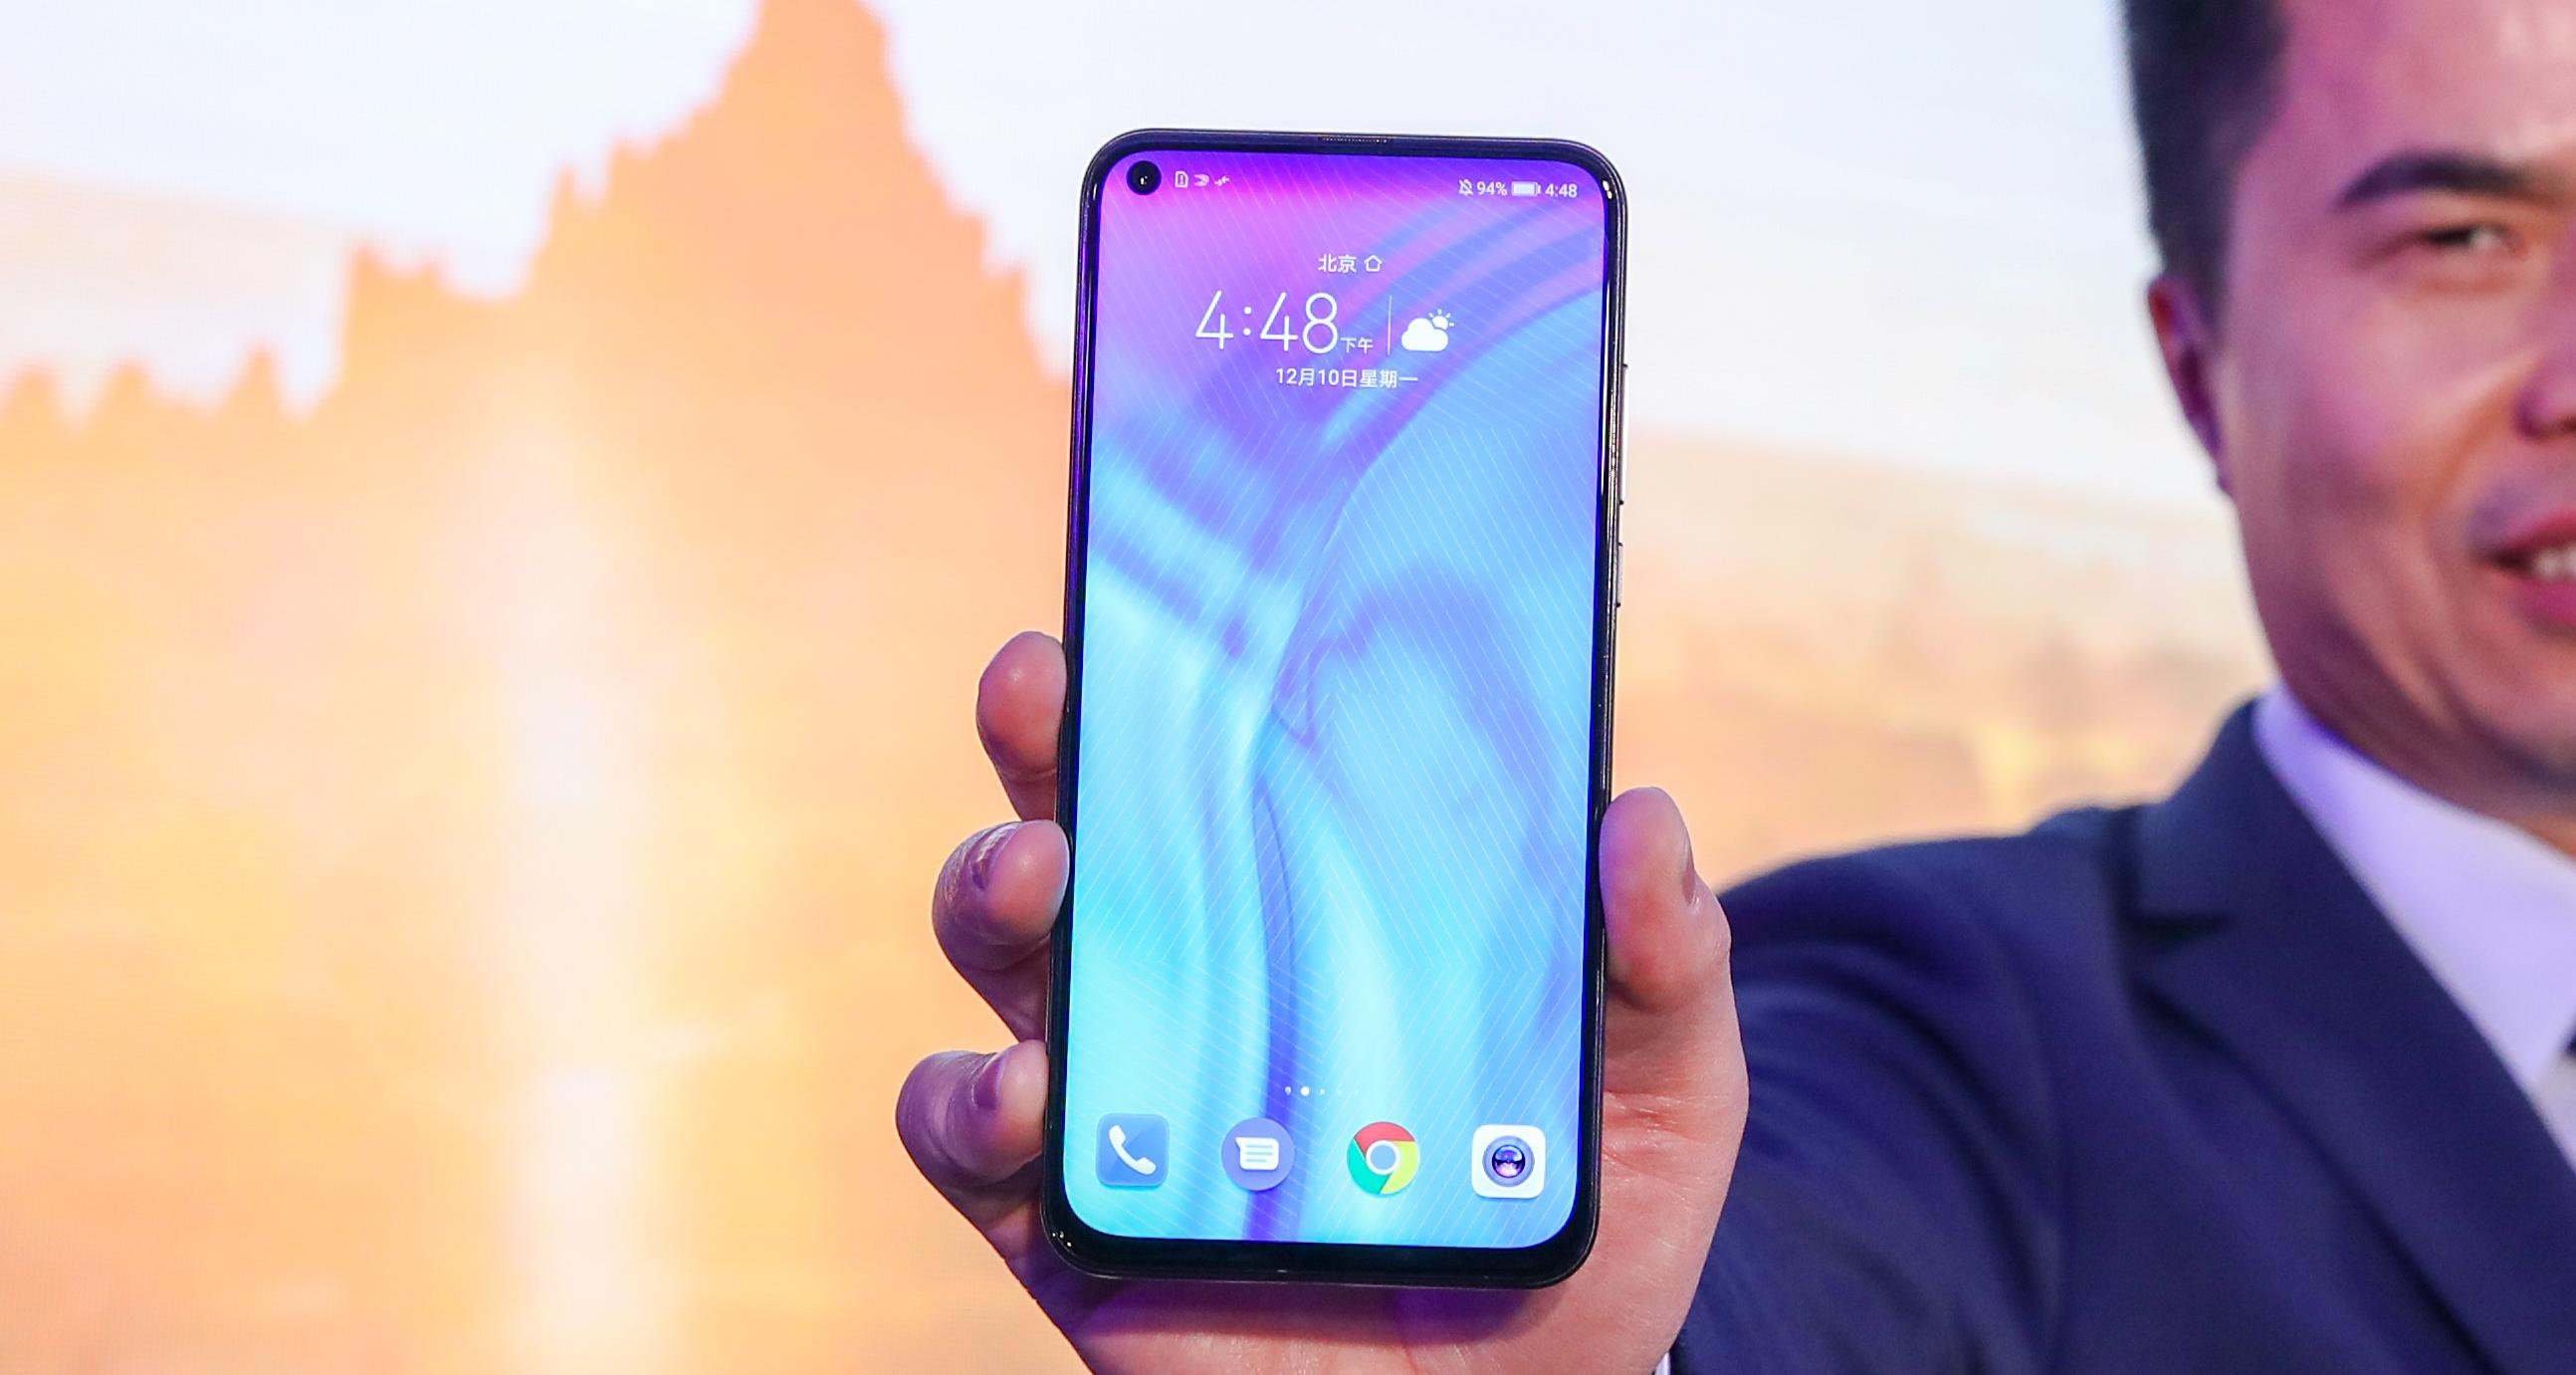 Jimmy Xiong General Manager of HONOR Product with the HONOR View201 - Next after notch, the hole-punch smartphone camera is coming